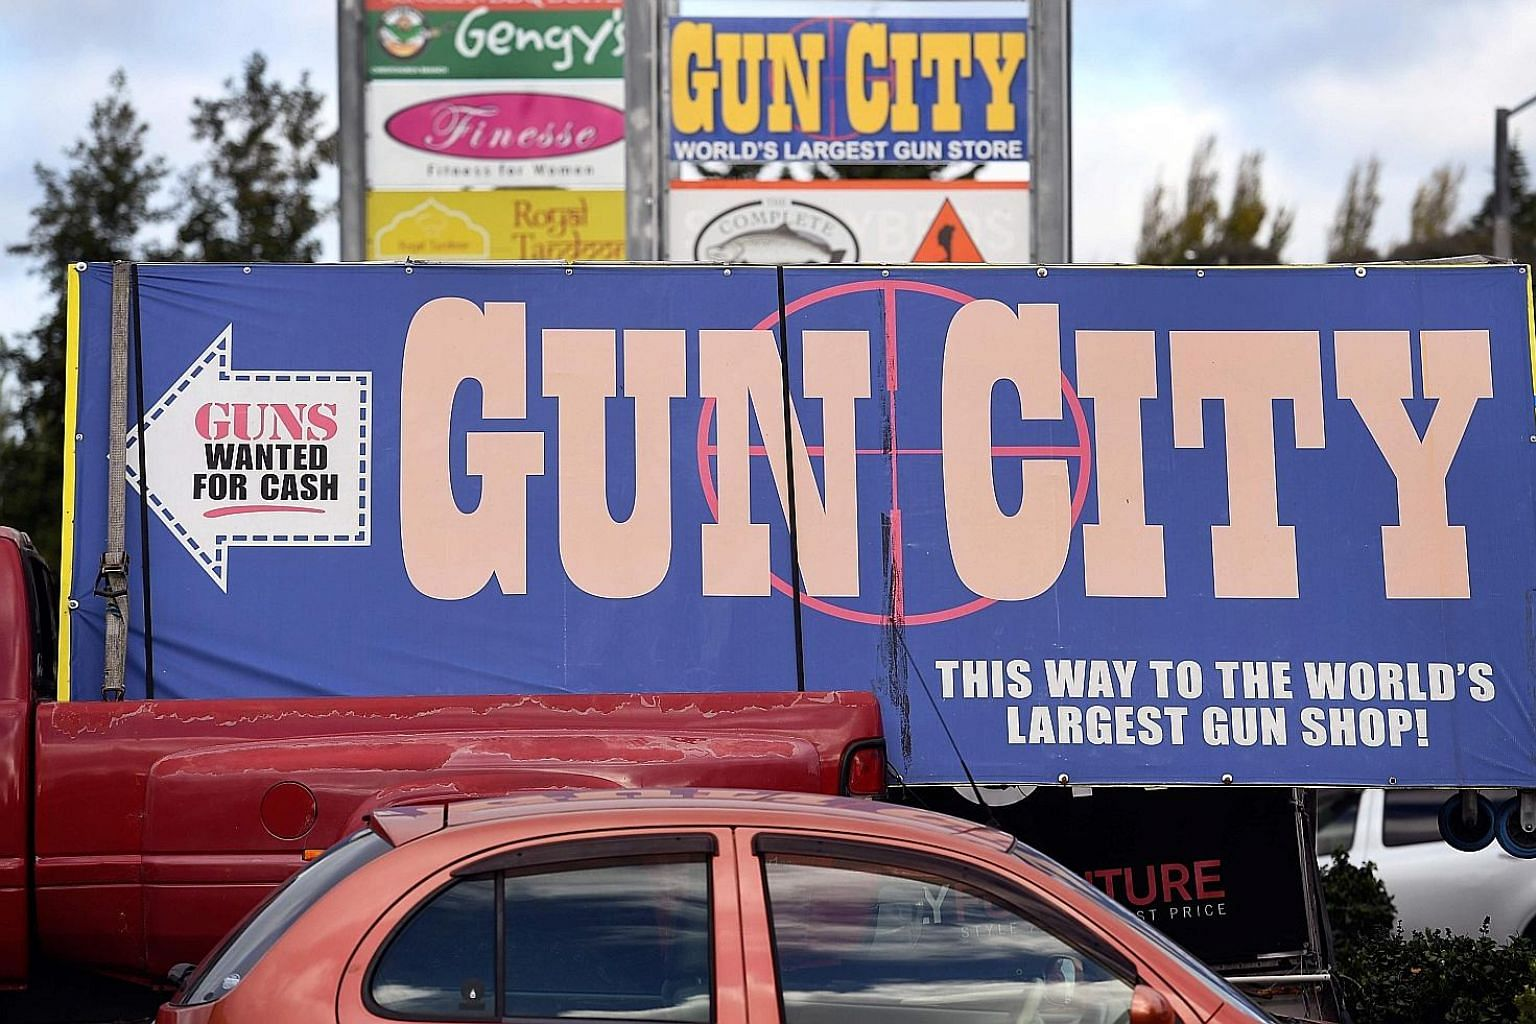 The New Zealand government has allocated NZ$208 million (S$186 million) for its gun buyback offer, NZ$40 million more than initially envisaged, it said yesterday. The offer comes three months after the shootings at two Christchurch mosques. PHOTO: AG